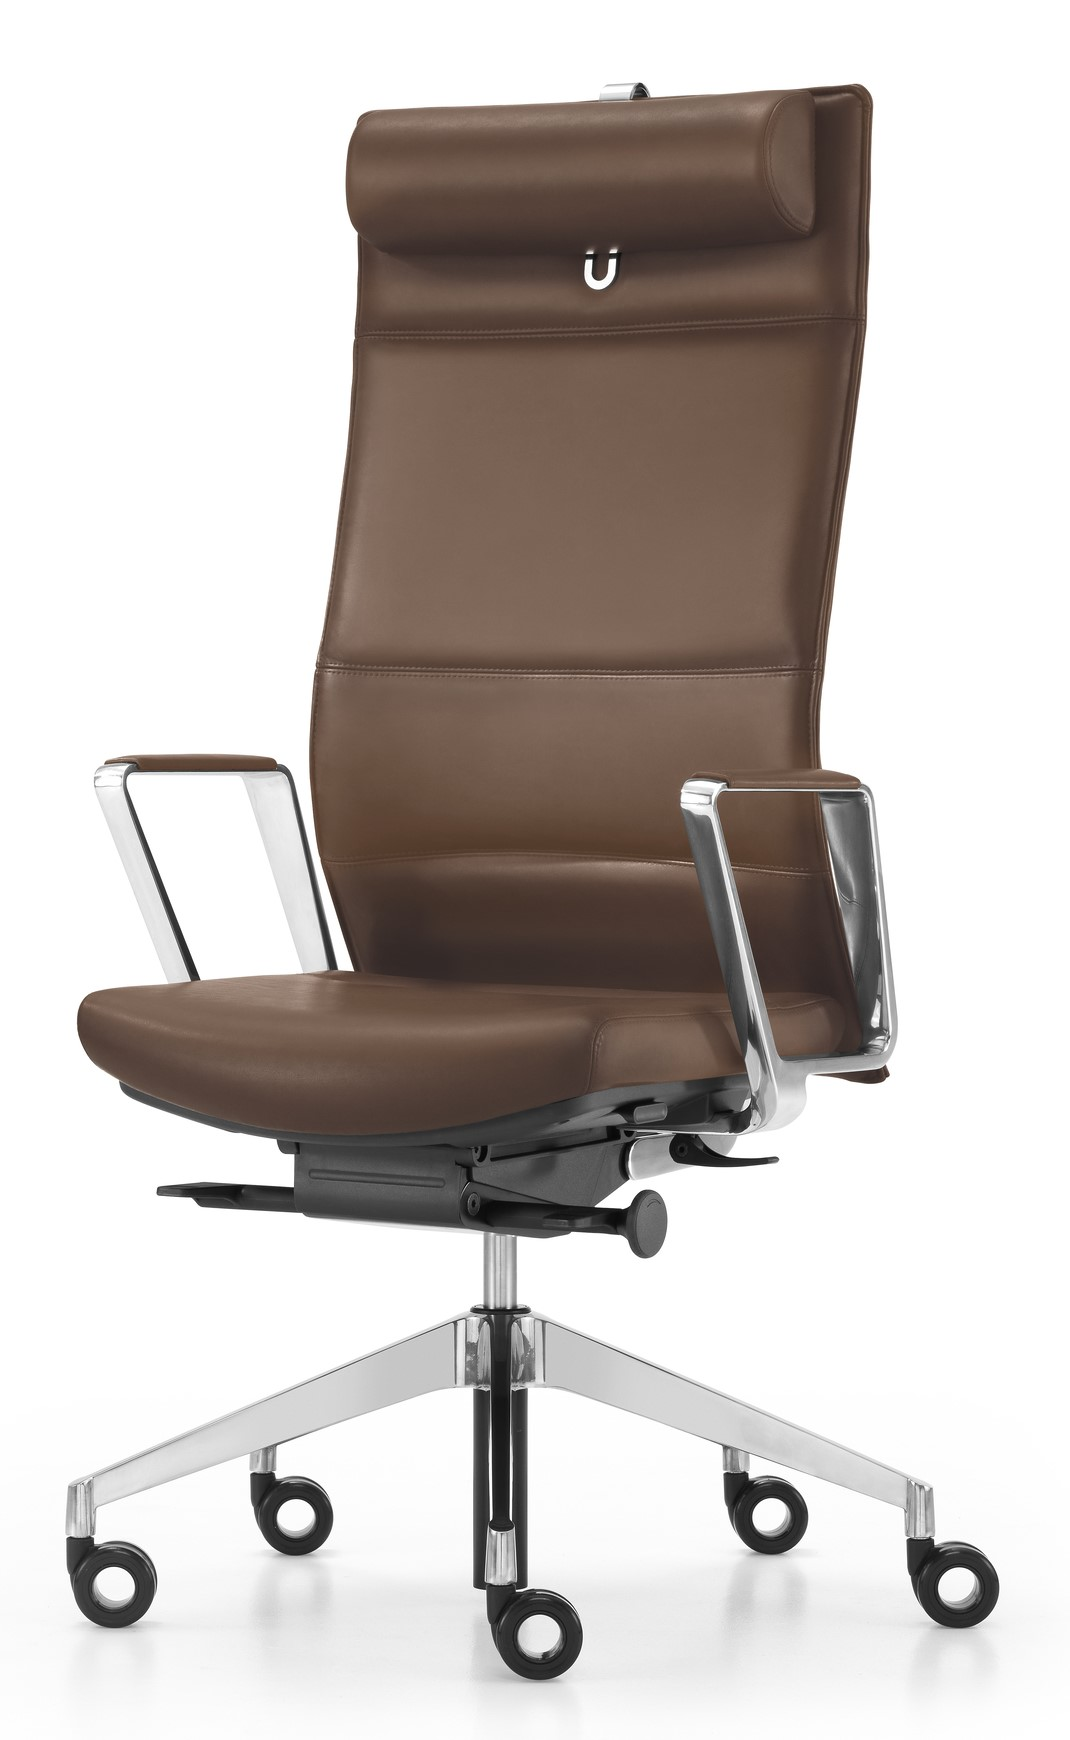 Bureaustoelen Uitproberen Diagon Executive Bureaustoelen Office Solutions Girsberger Stoelen